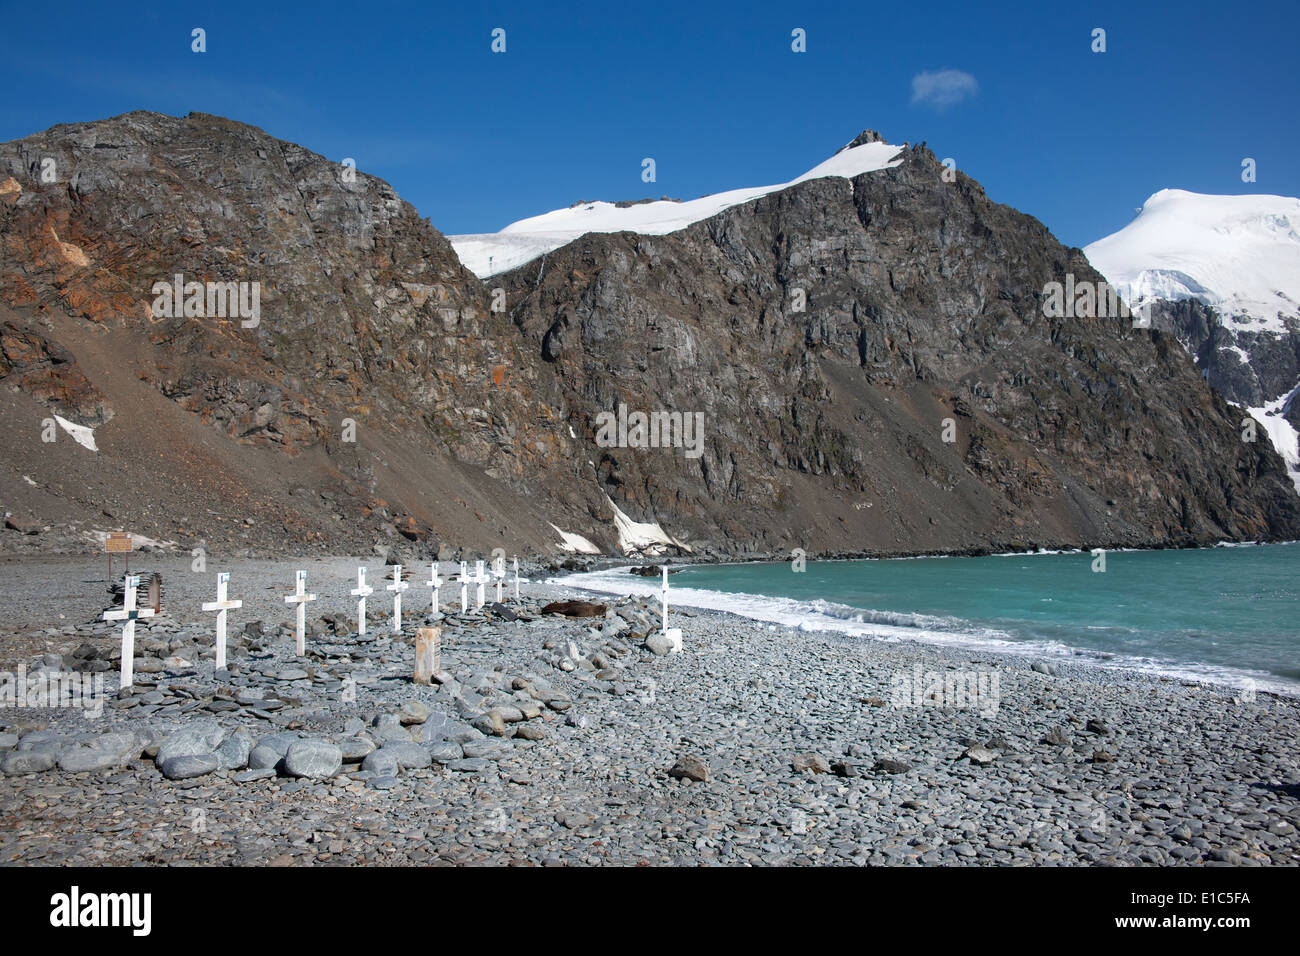 A row of graves and crosses on the beach at Camp Livingston. - Stock Image